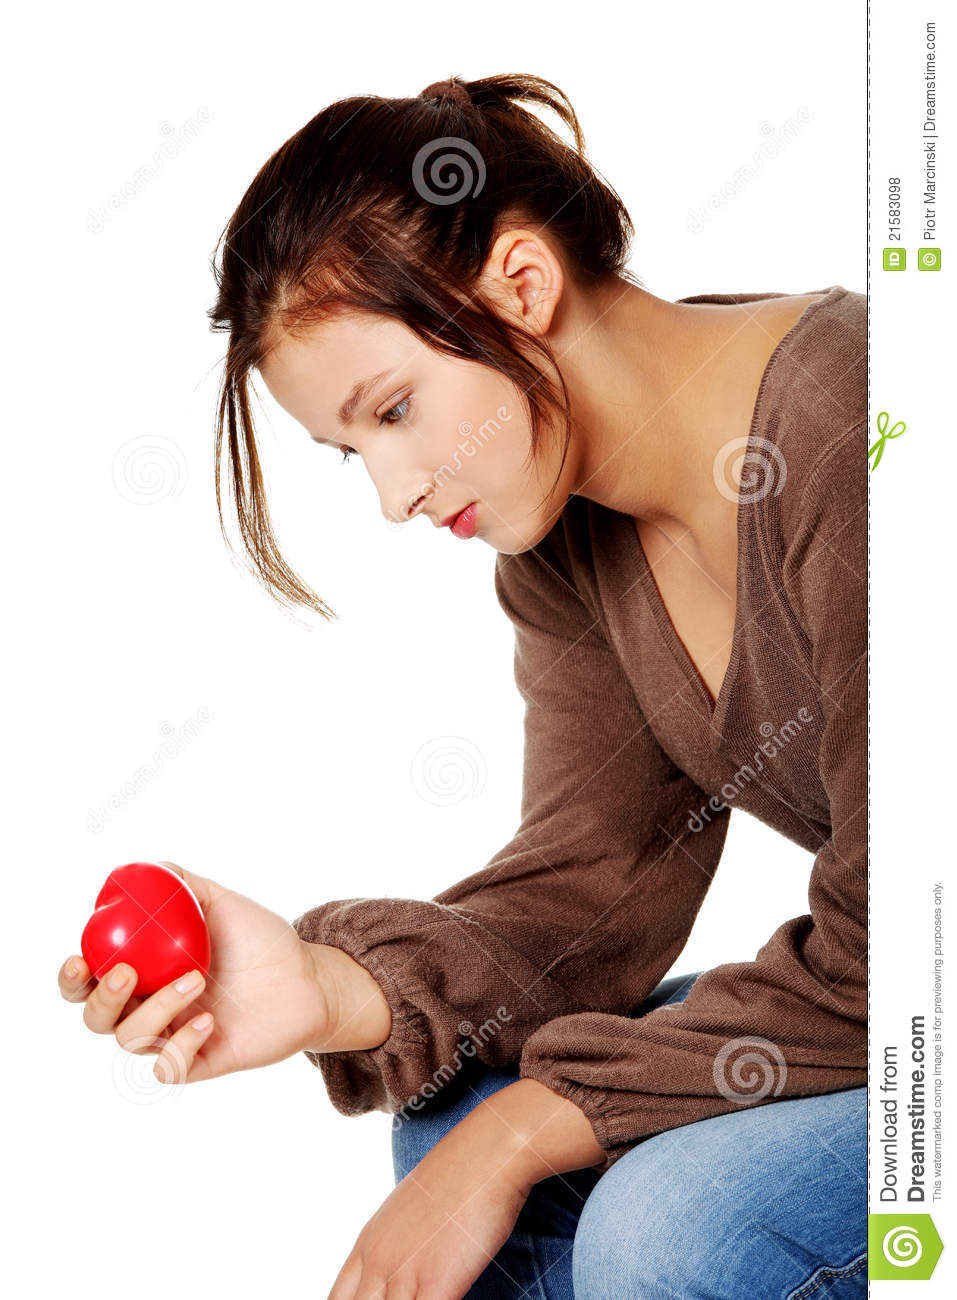 Sad Women Holding Heart In Her Hand. Stock Photo - Image of pressure ... 2b5ab8657